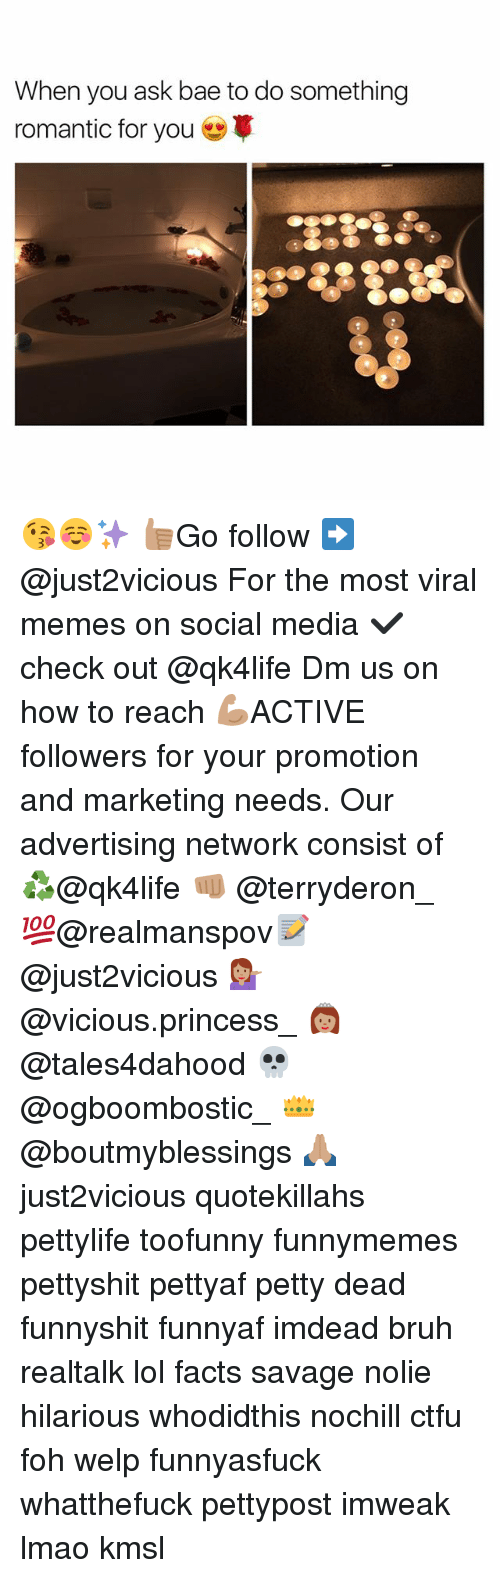 Bae, Bruh, and Ctfu: When you ask bae to do something  romantic for you 😘☺️✨ 👍🏽Go follow ➡@just2vicious For the most viral memes on social media ✔check out @qk4life Dm us on how to reach 💪🏽ACTIVE followers for your promotion and marketing needs. Our advertising network consist of ♻@qk4life 👊🏽 @terryderon_ 💯@realmanspov📝 @just2vicious 💁🏽 @vicious.princess_ 👸🏽@tales4dahood 💀 @ogboombostic_ 👑 @boutmyblessings 🙏🏽 just2vicious quotekillahs pettylife toofunny funnymemes pettyshit pettyaf petty dead funnyshit funnyaf imdead bruh realtalk lol facts savage nolie hilarious whodidthis nochill ctfu foh welp funnyasfuck whatthefuck pettypost imweak lmao kmsl